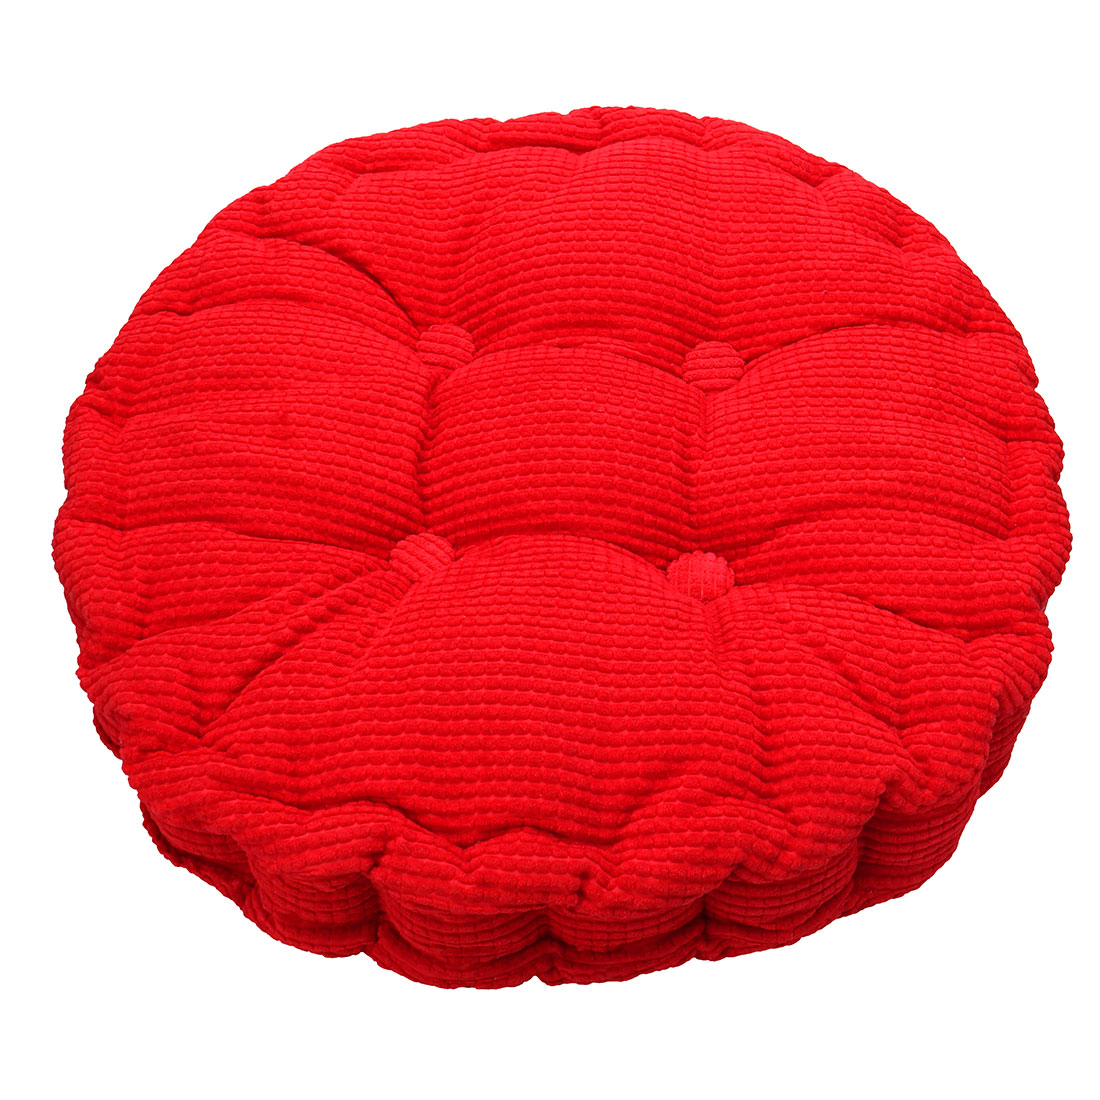 Home Corduroy Round Shaped Thickened Pillow Seat Chair Cushion Pad Mat Red